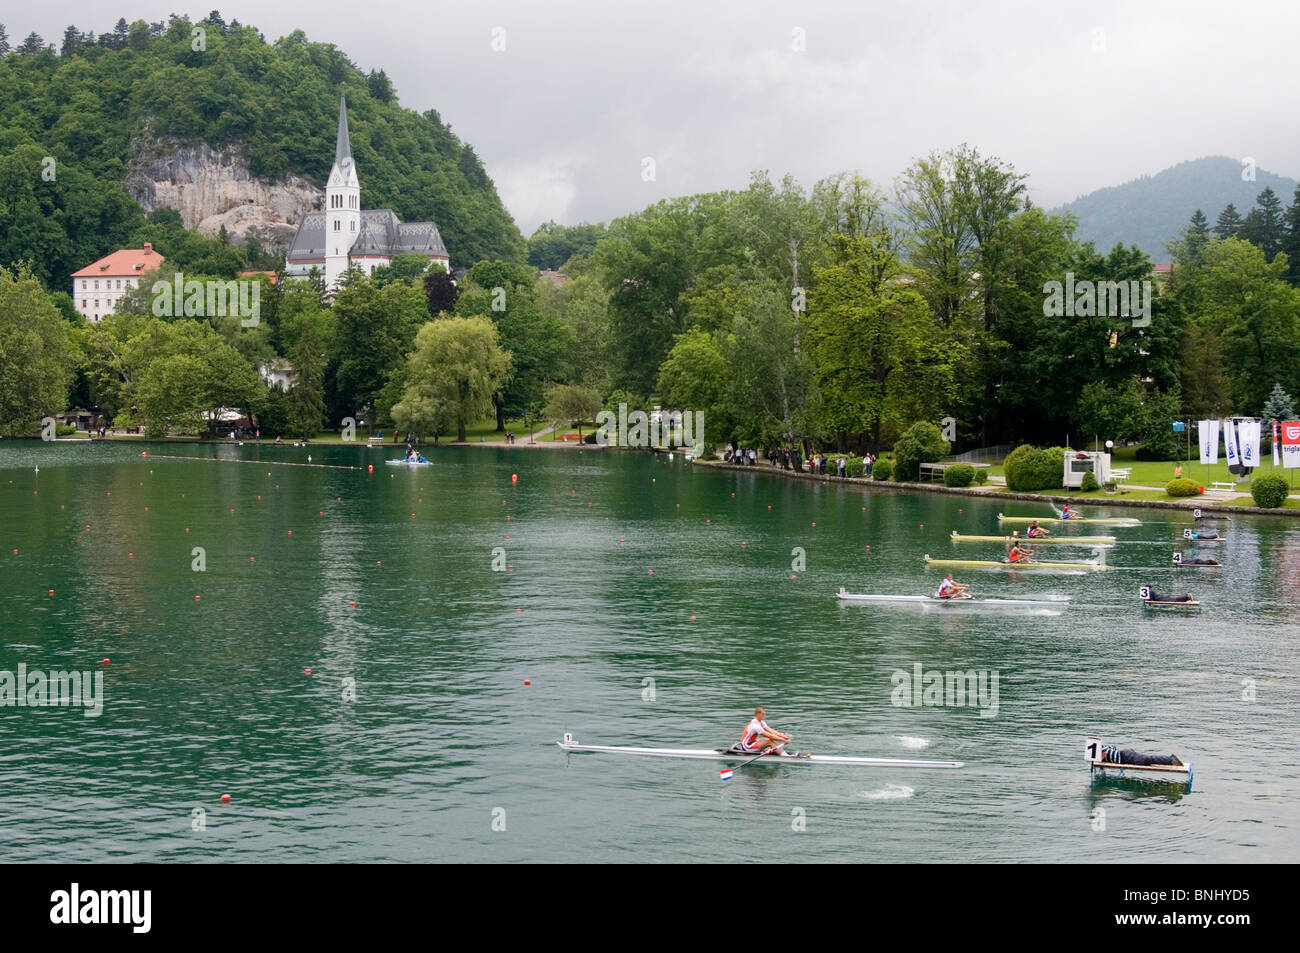 Rowing World Cup at Bled, Slovenia, May 2010 - Stock Image